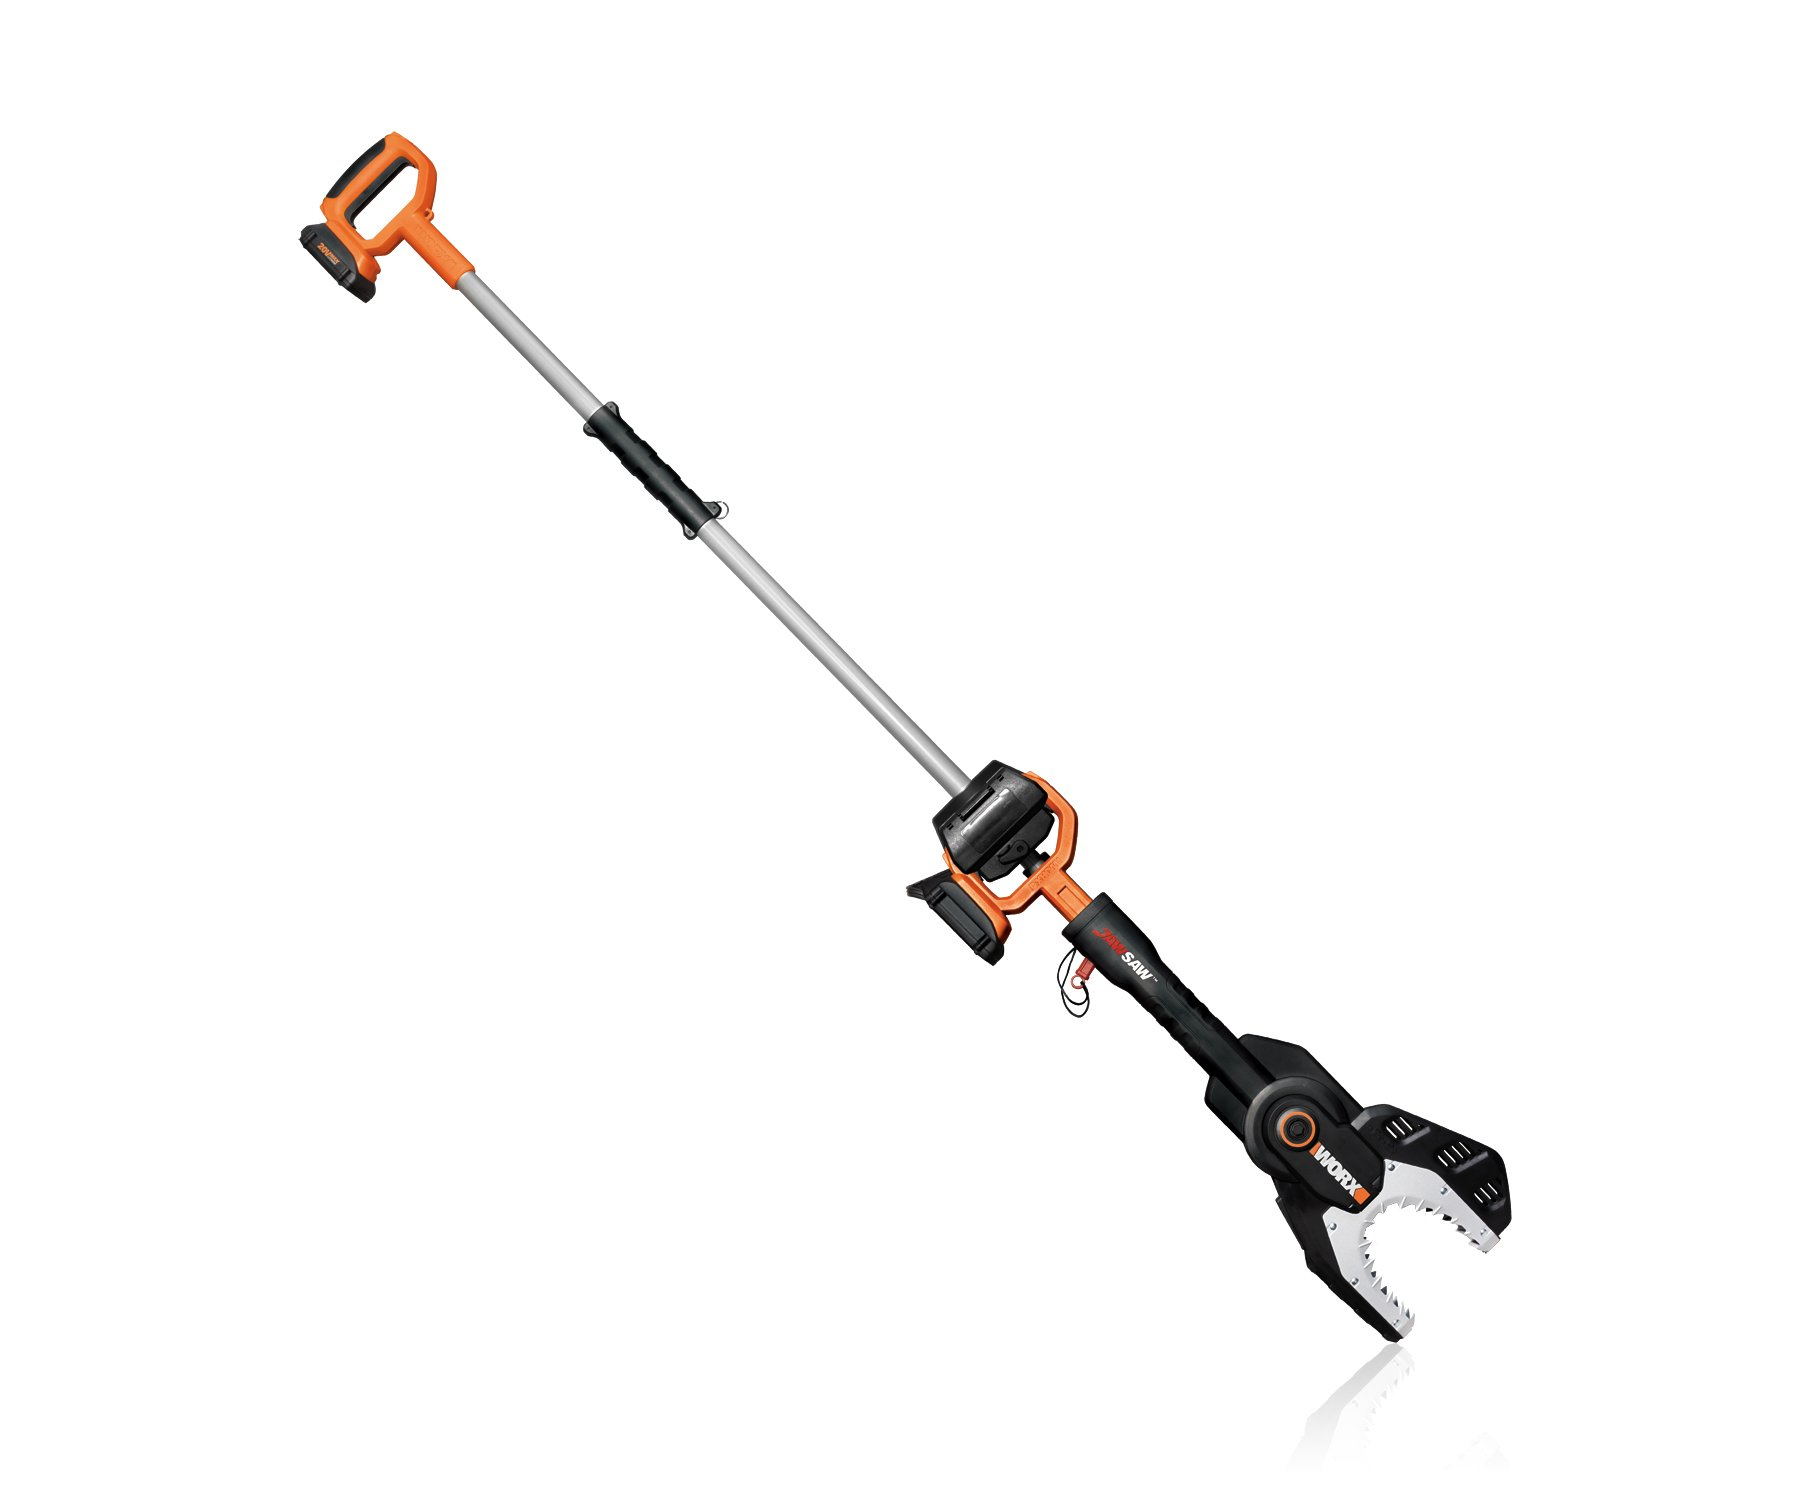 WORX WG321 20-volt Max Lithium Cordless Chainsaw with Extension Pole, Battery and Charger Included by Worx